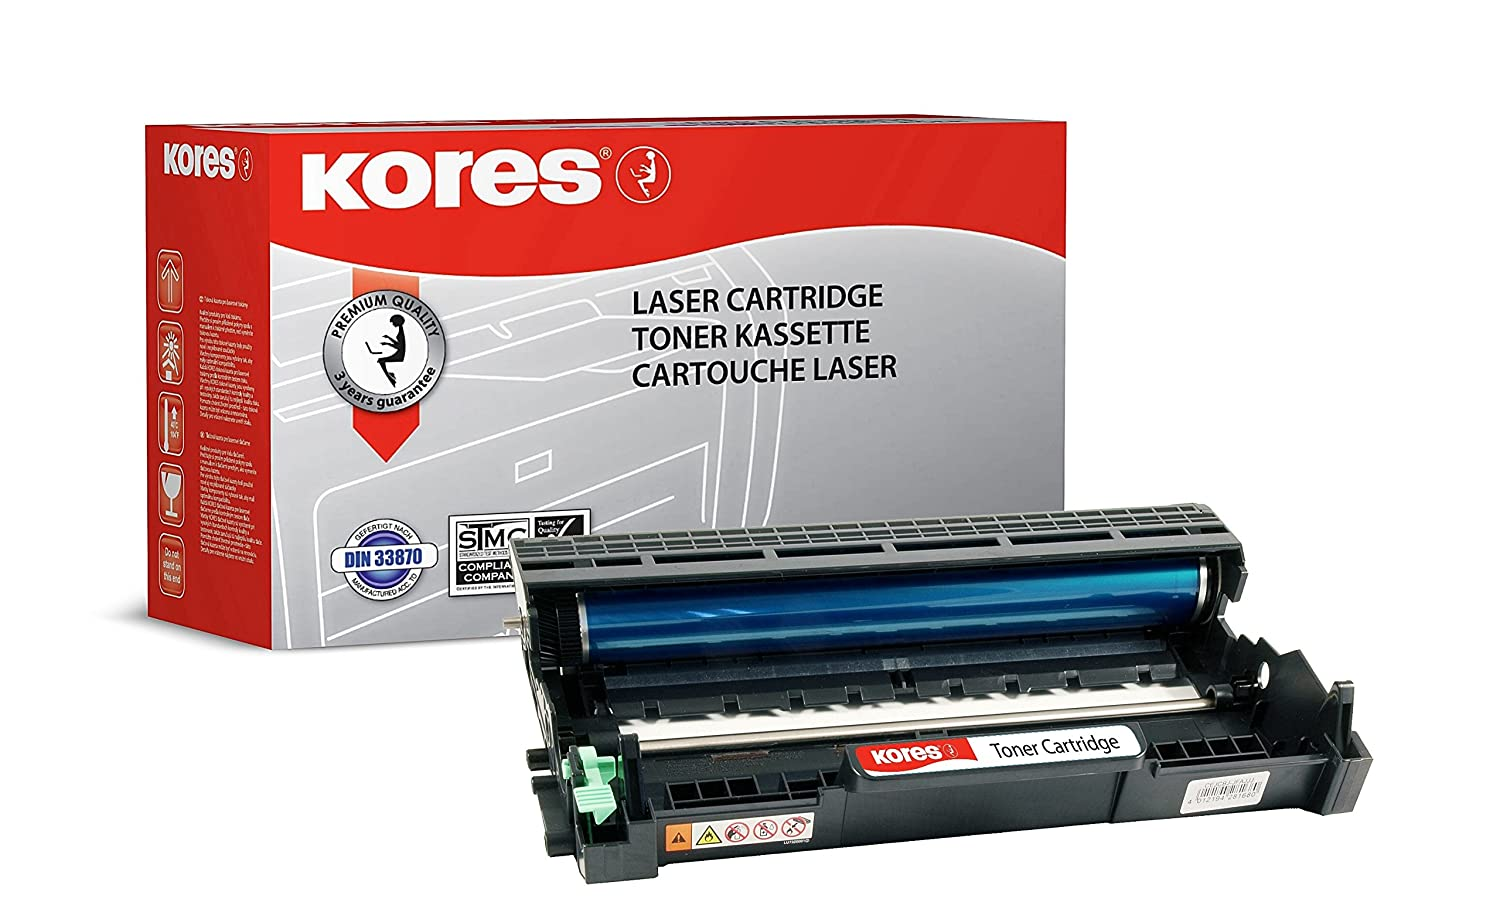 Kores - Kores Trommel für brother Laserdrucker HL-2240/HL-2240D ...